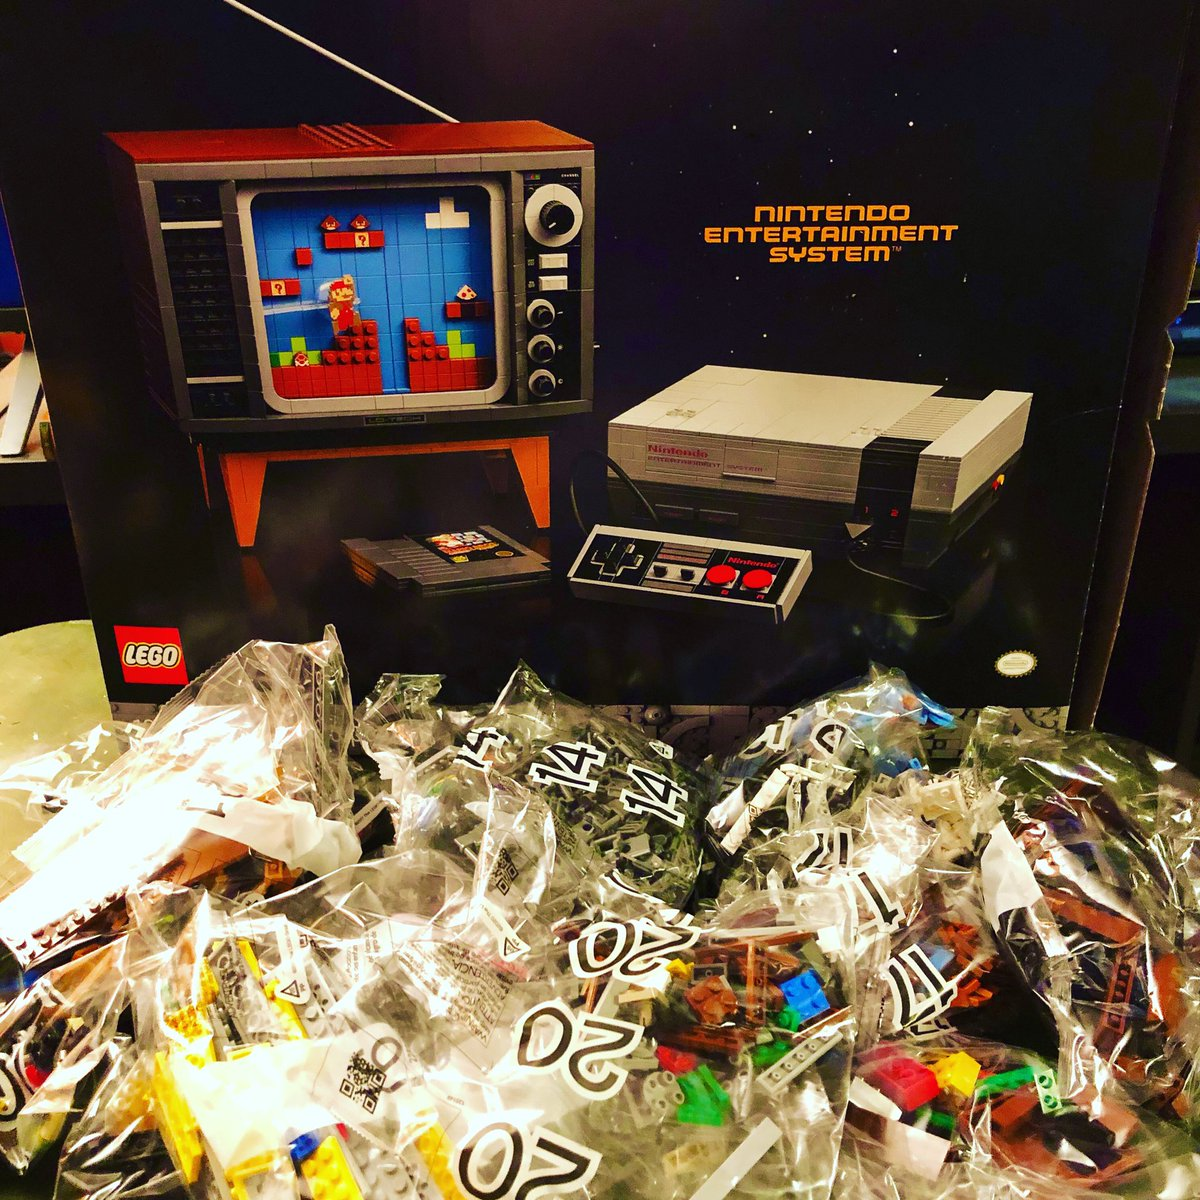 #LEGOBuildDay NES has been completed, but now it's time for the retro television set! https://t.co/GTW4IRsvHk